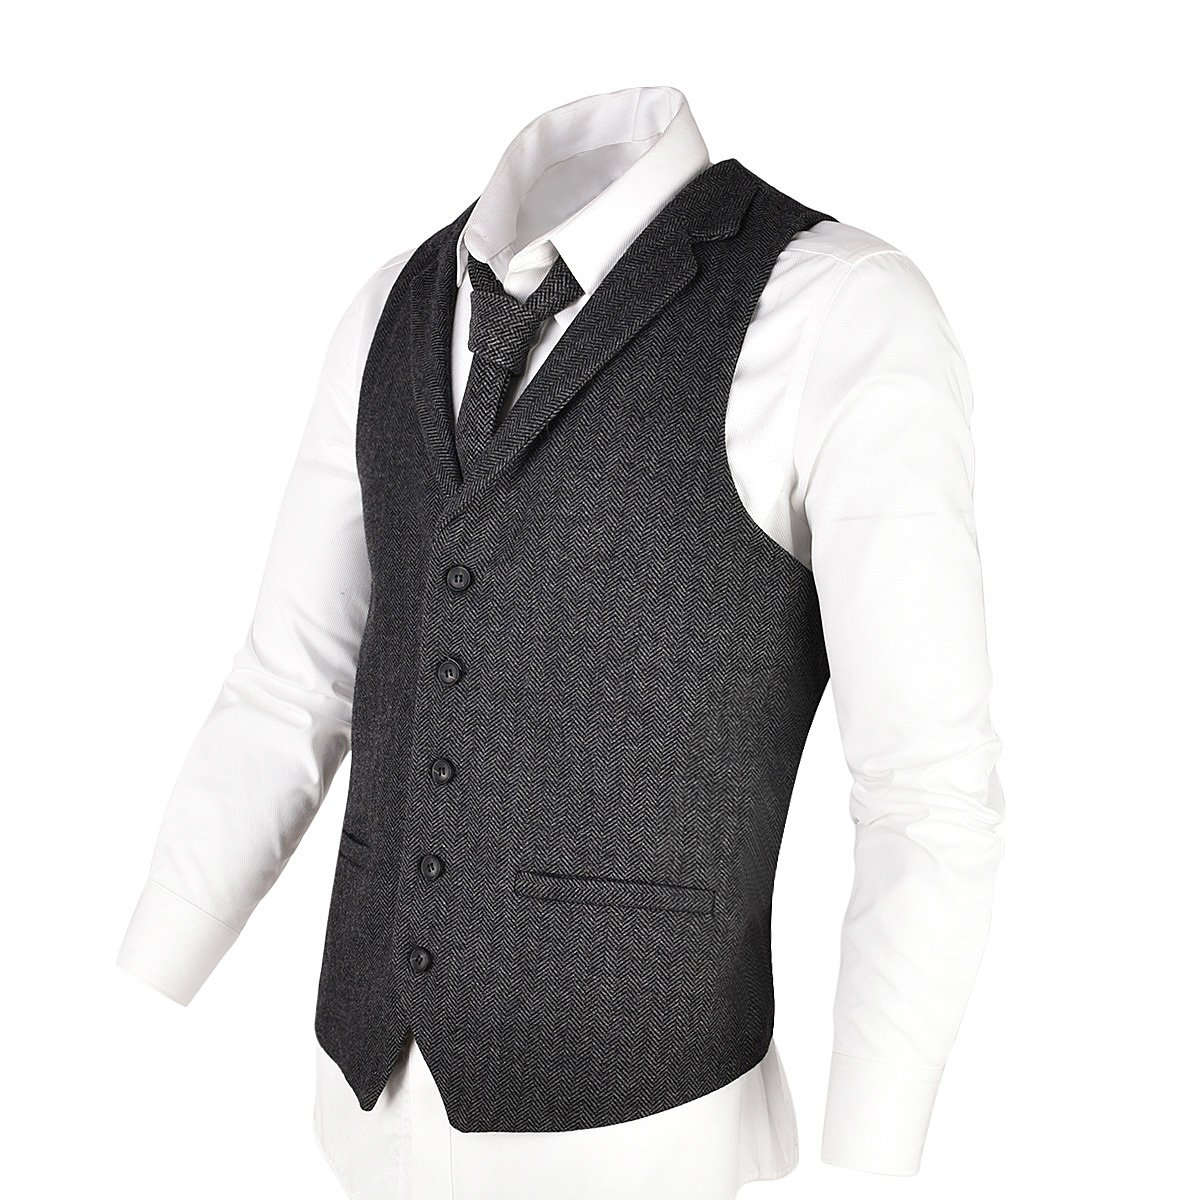 Retro Clothing for Men | Vintage Men's Fashion VOBOOM Mens Herringbone Tailored Collar Waistcoat Fullback Wool Tweed Suit Vest $39.99 AT vintagedancer.com